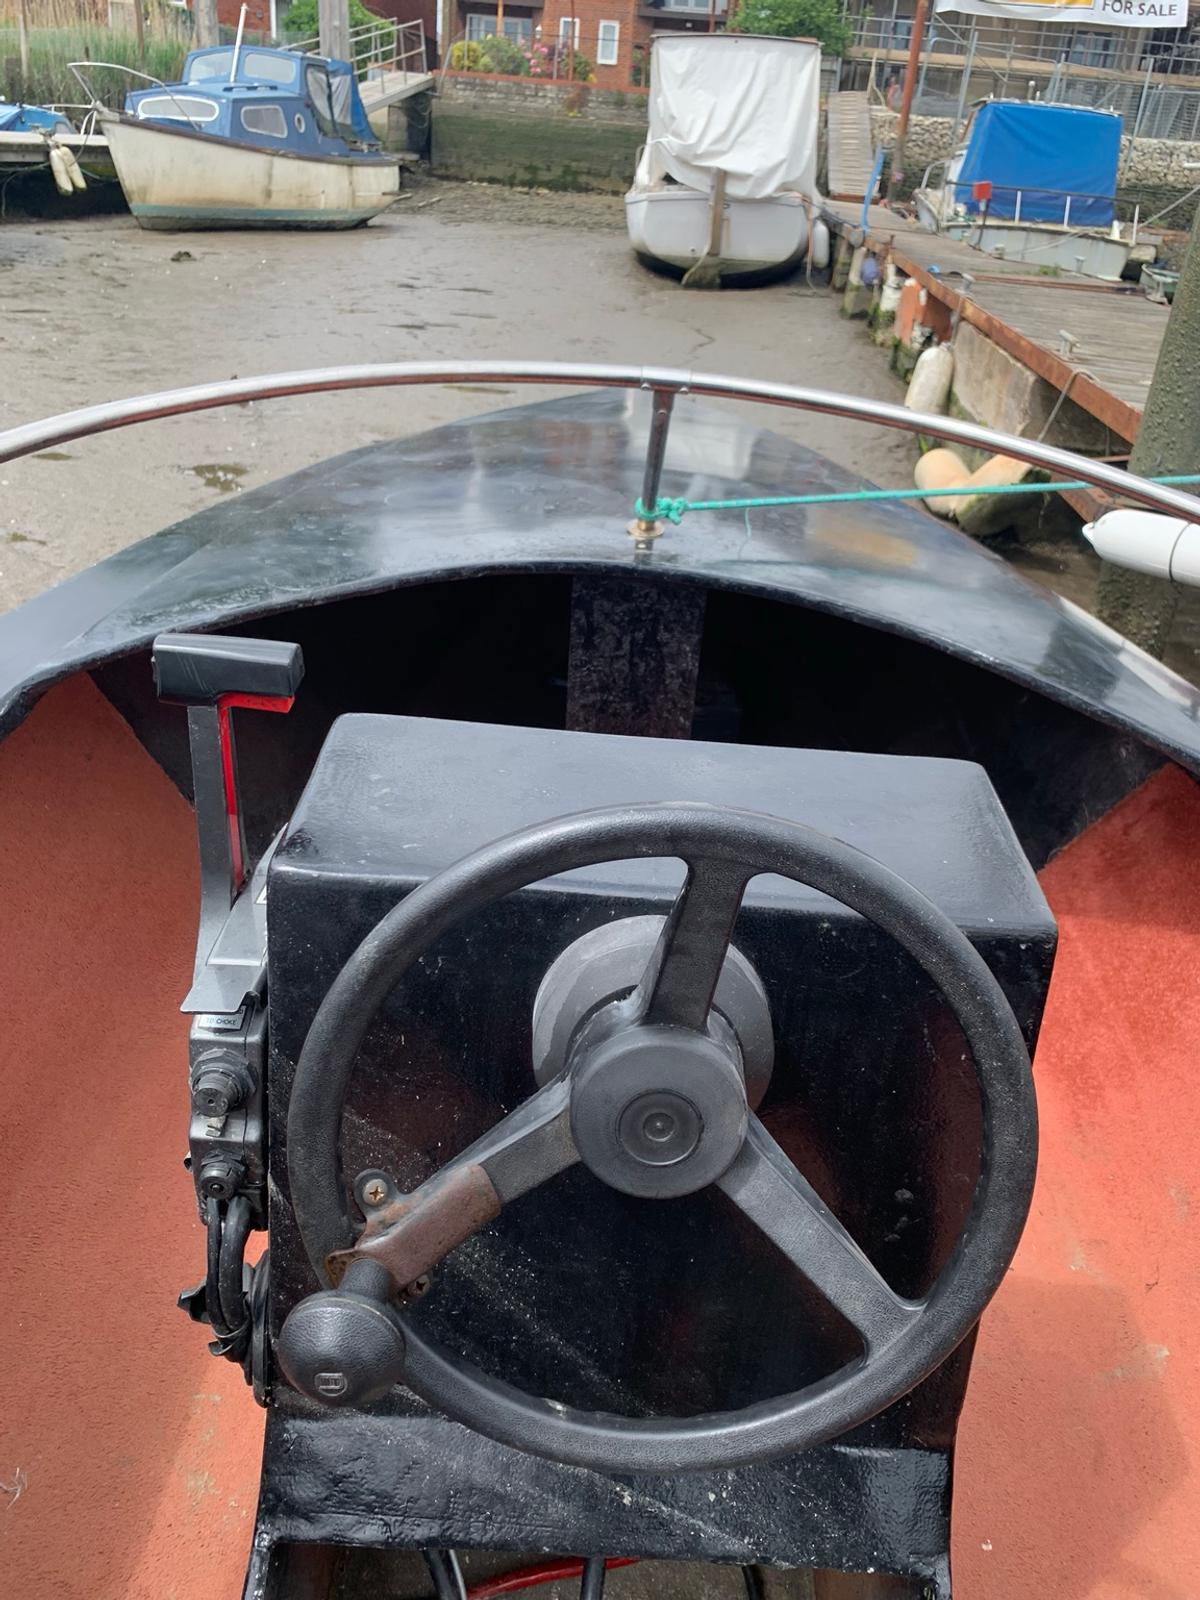 Driver 560 Speed Boat In So16 Southampton For 500 00 For Sale Shpock